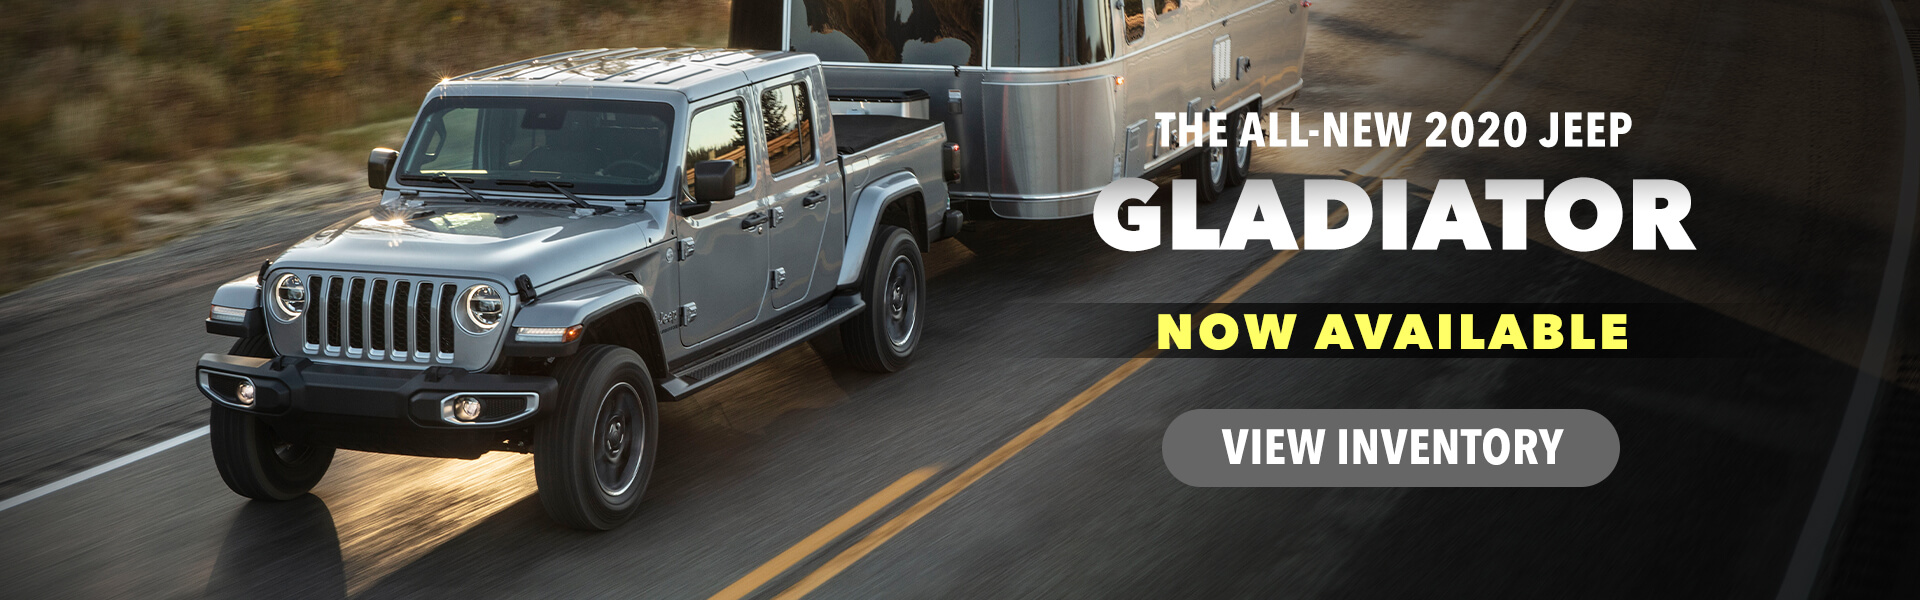 Jeep Gladiator - Available Now